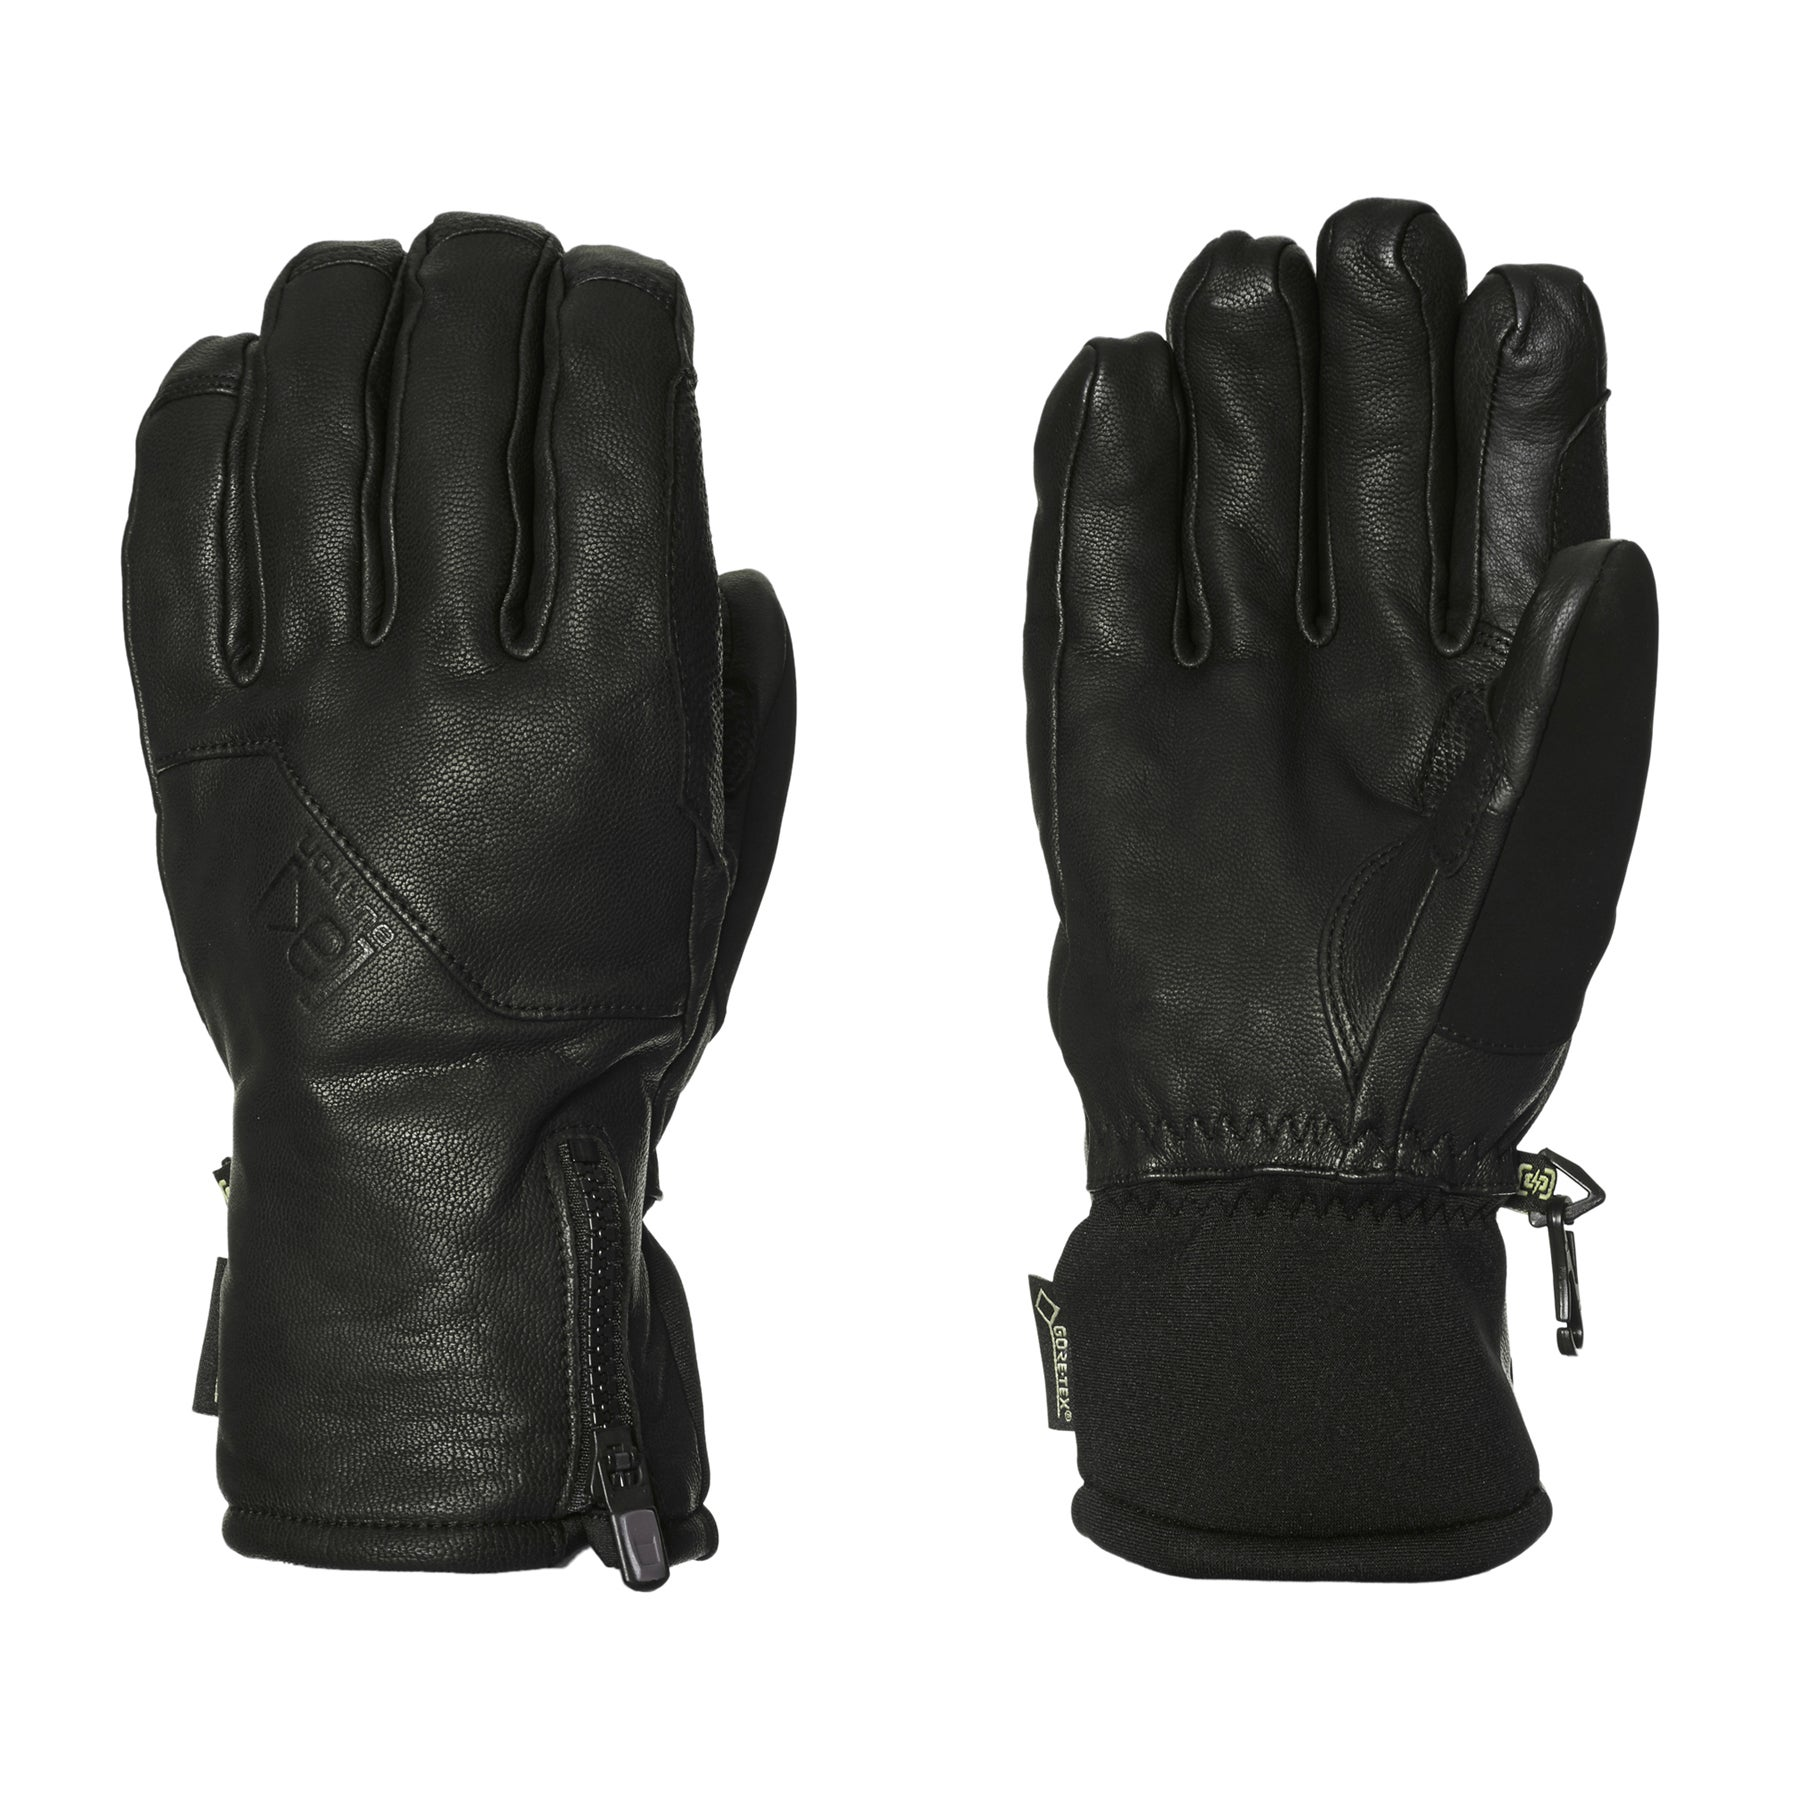 Burton GoreTex Guide Snow Gloves - True Black